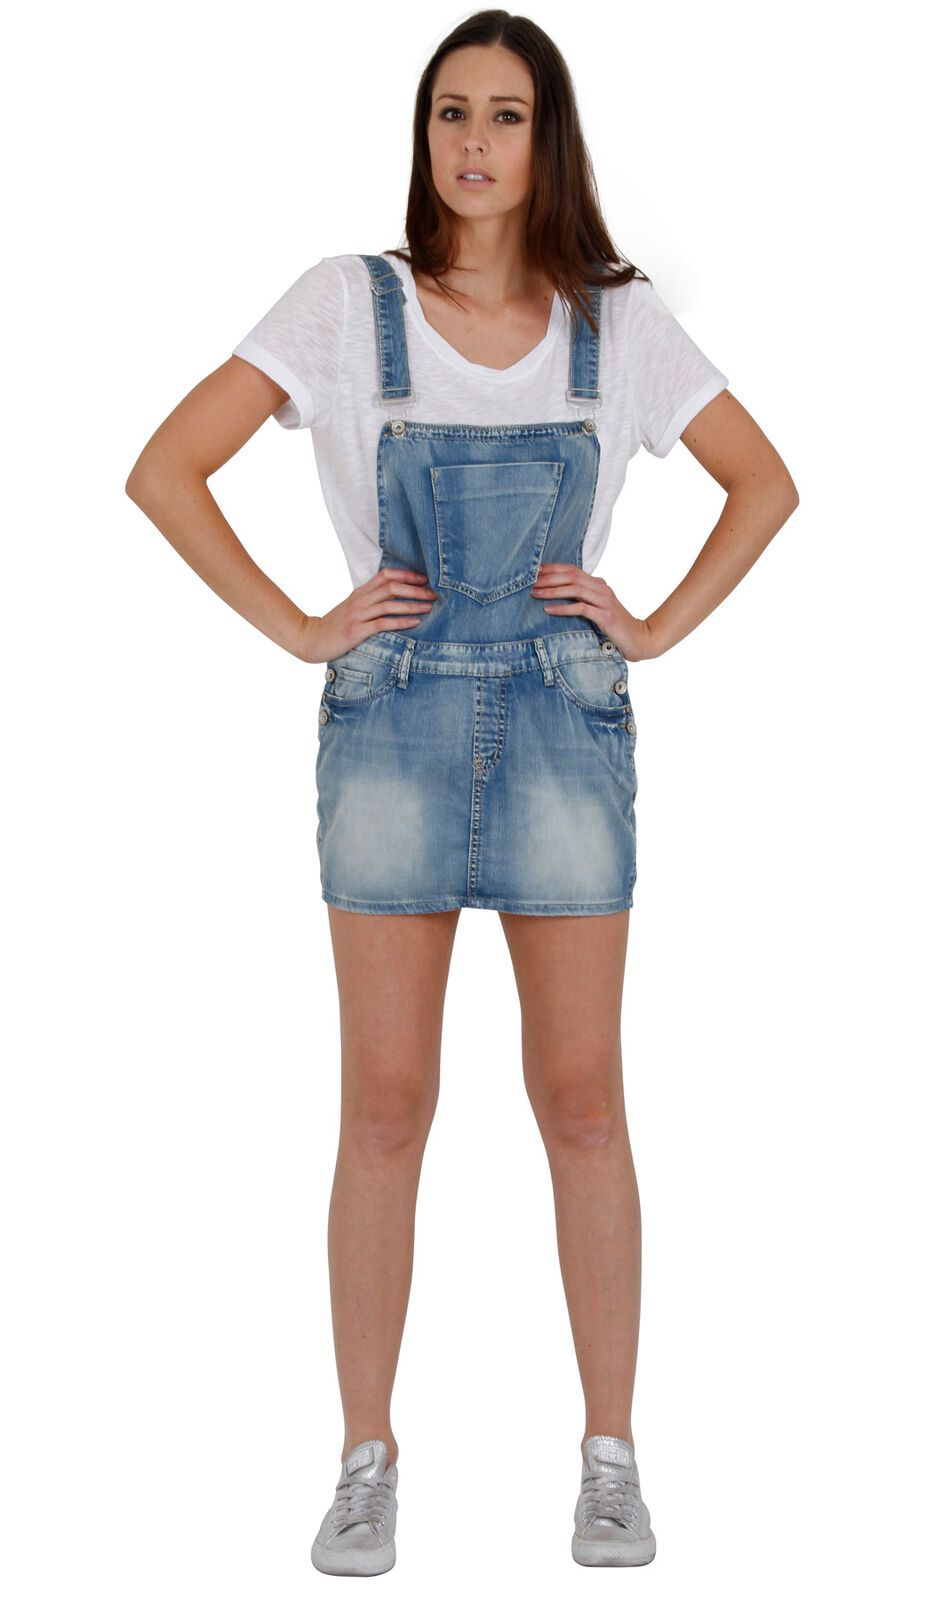 Full-length front view of stylish, ultra-short, faded blue denim dress from Dungarees Online. Model with hands on hips.